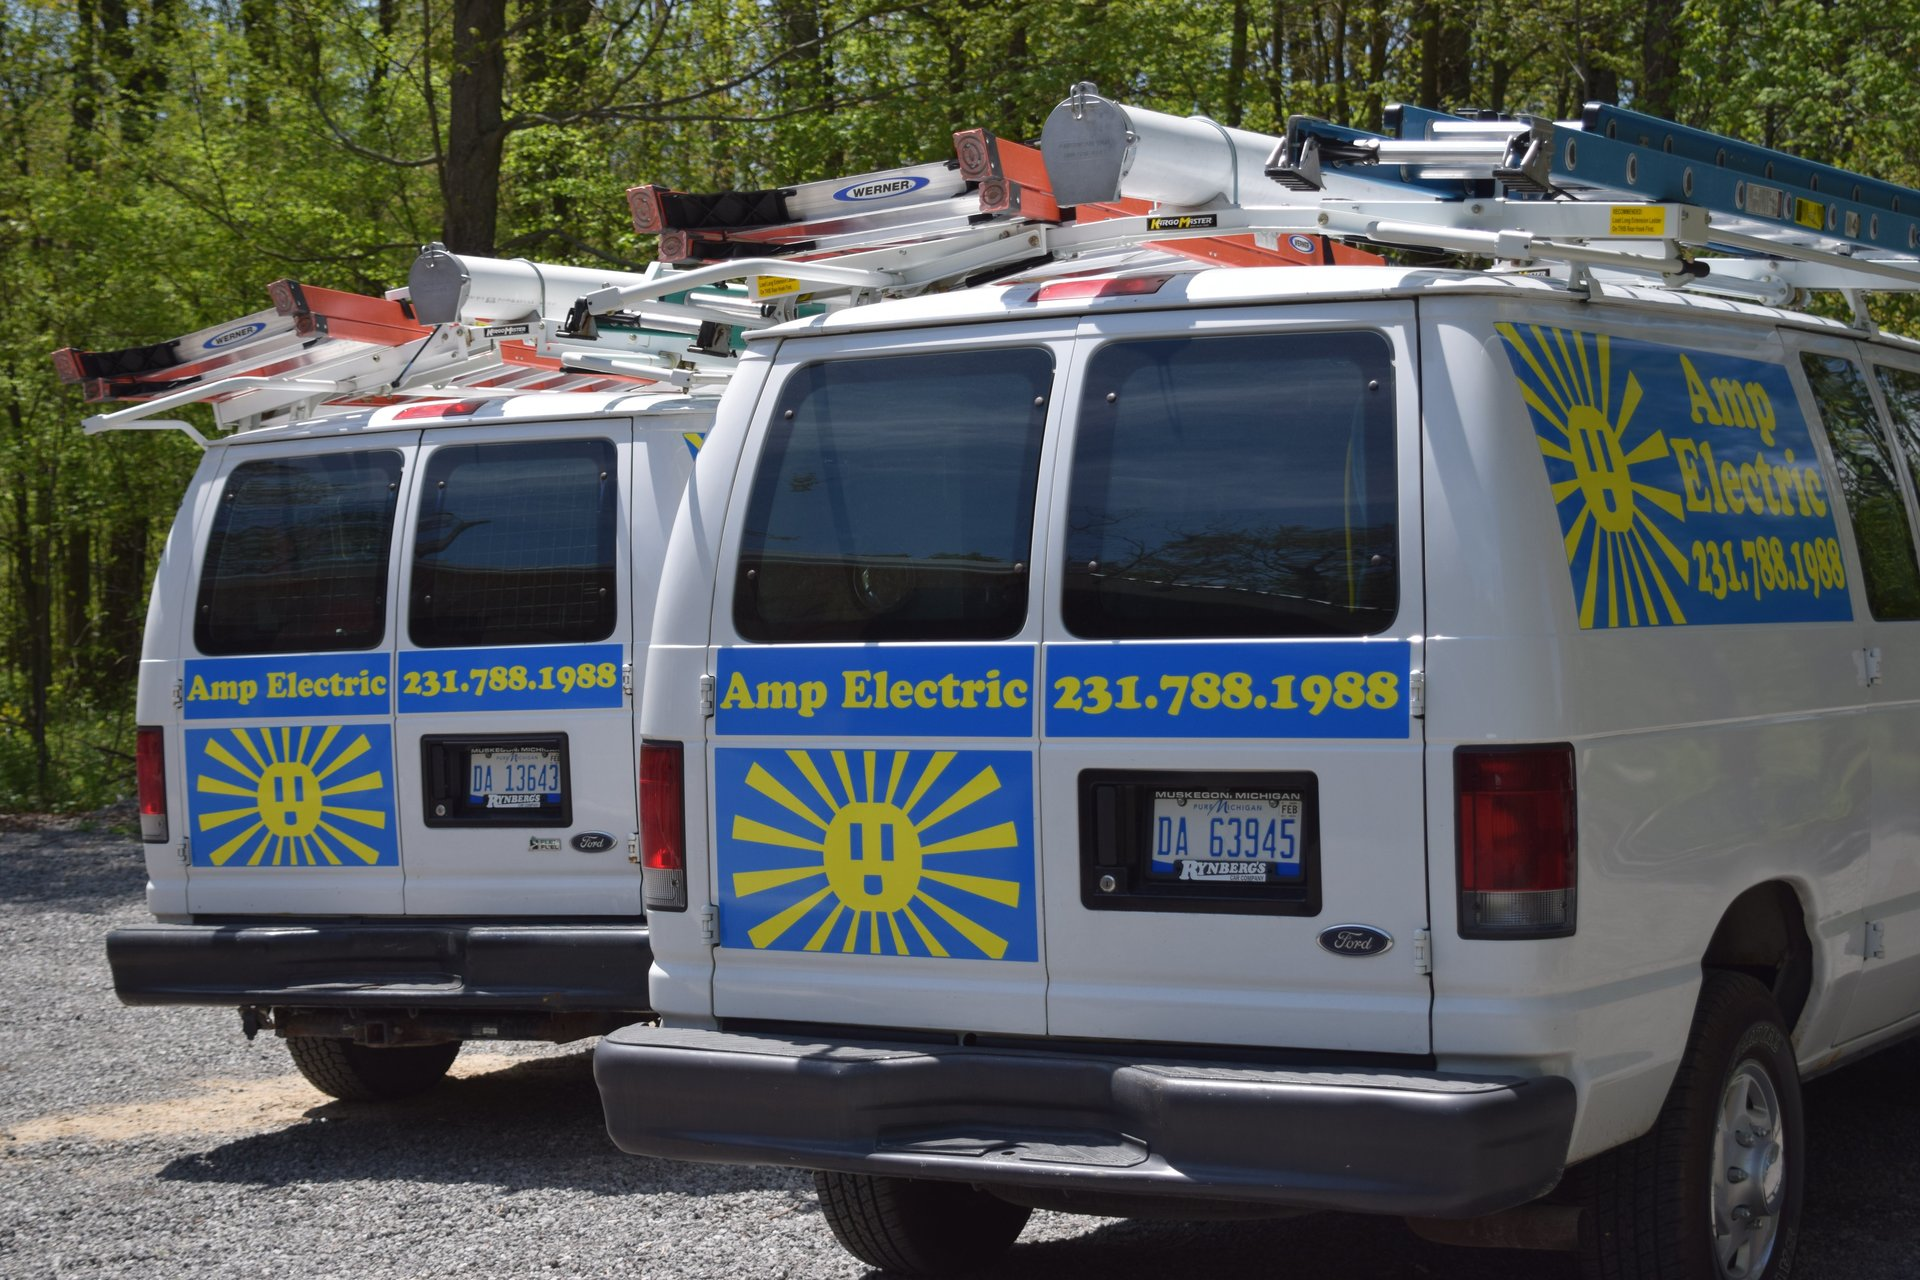 Amp Electric West Mi Electrician Electrical Services Norton Shores Cost To Replace Knob And Tube Wiring Is A Residential Or Commercial